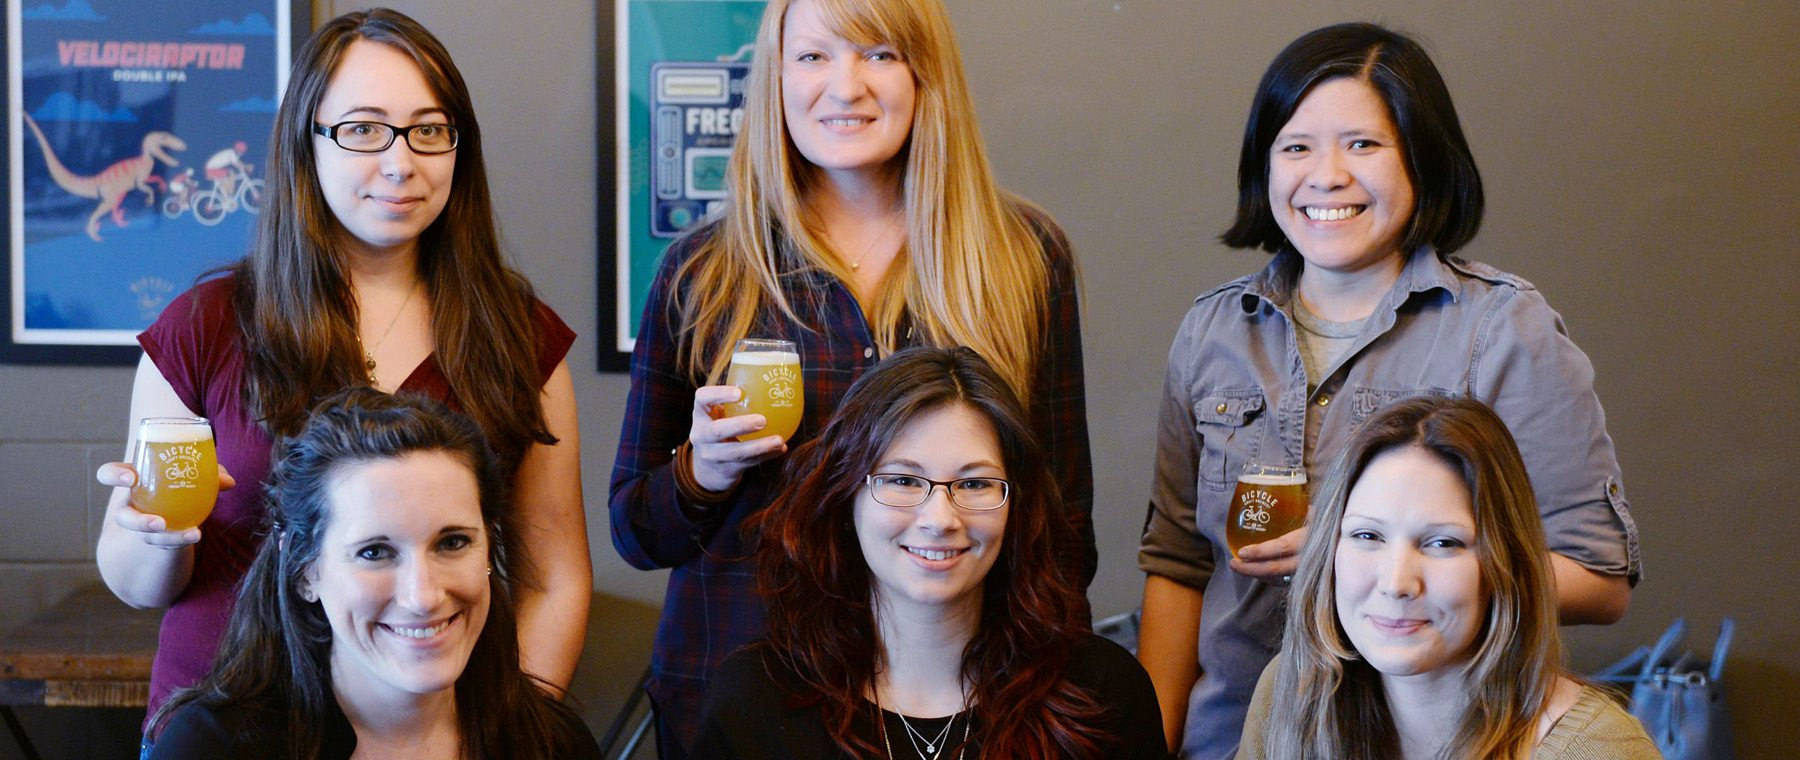 Women in Industry event recognizes female leadership in food and bev industry